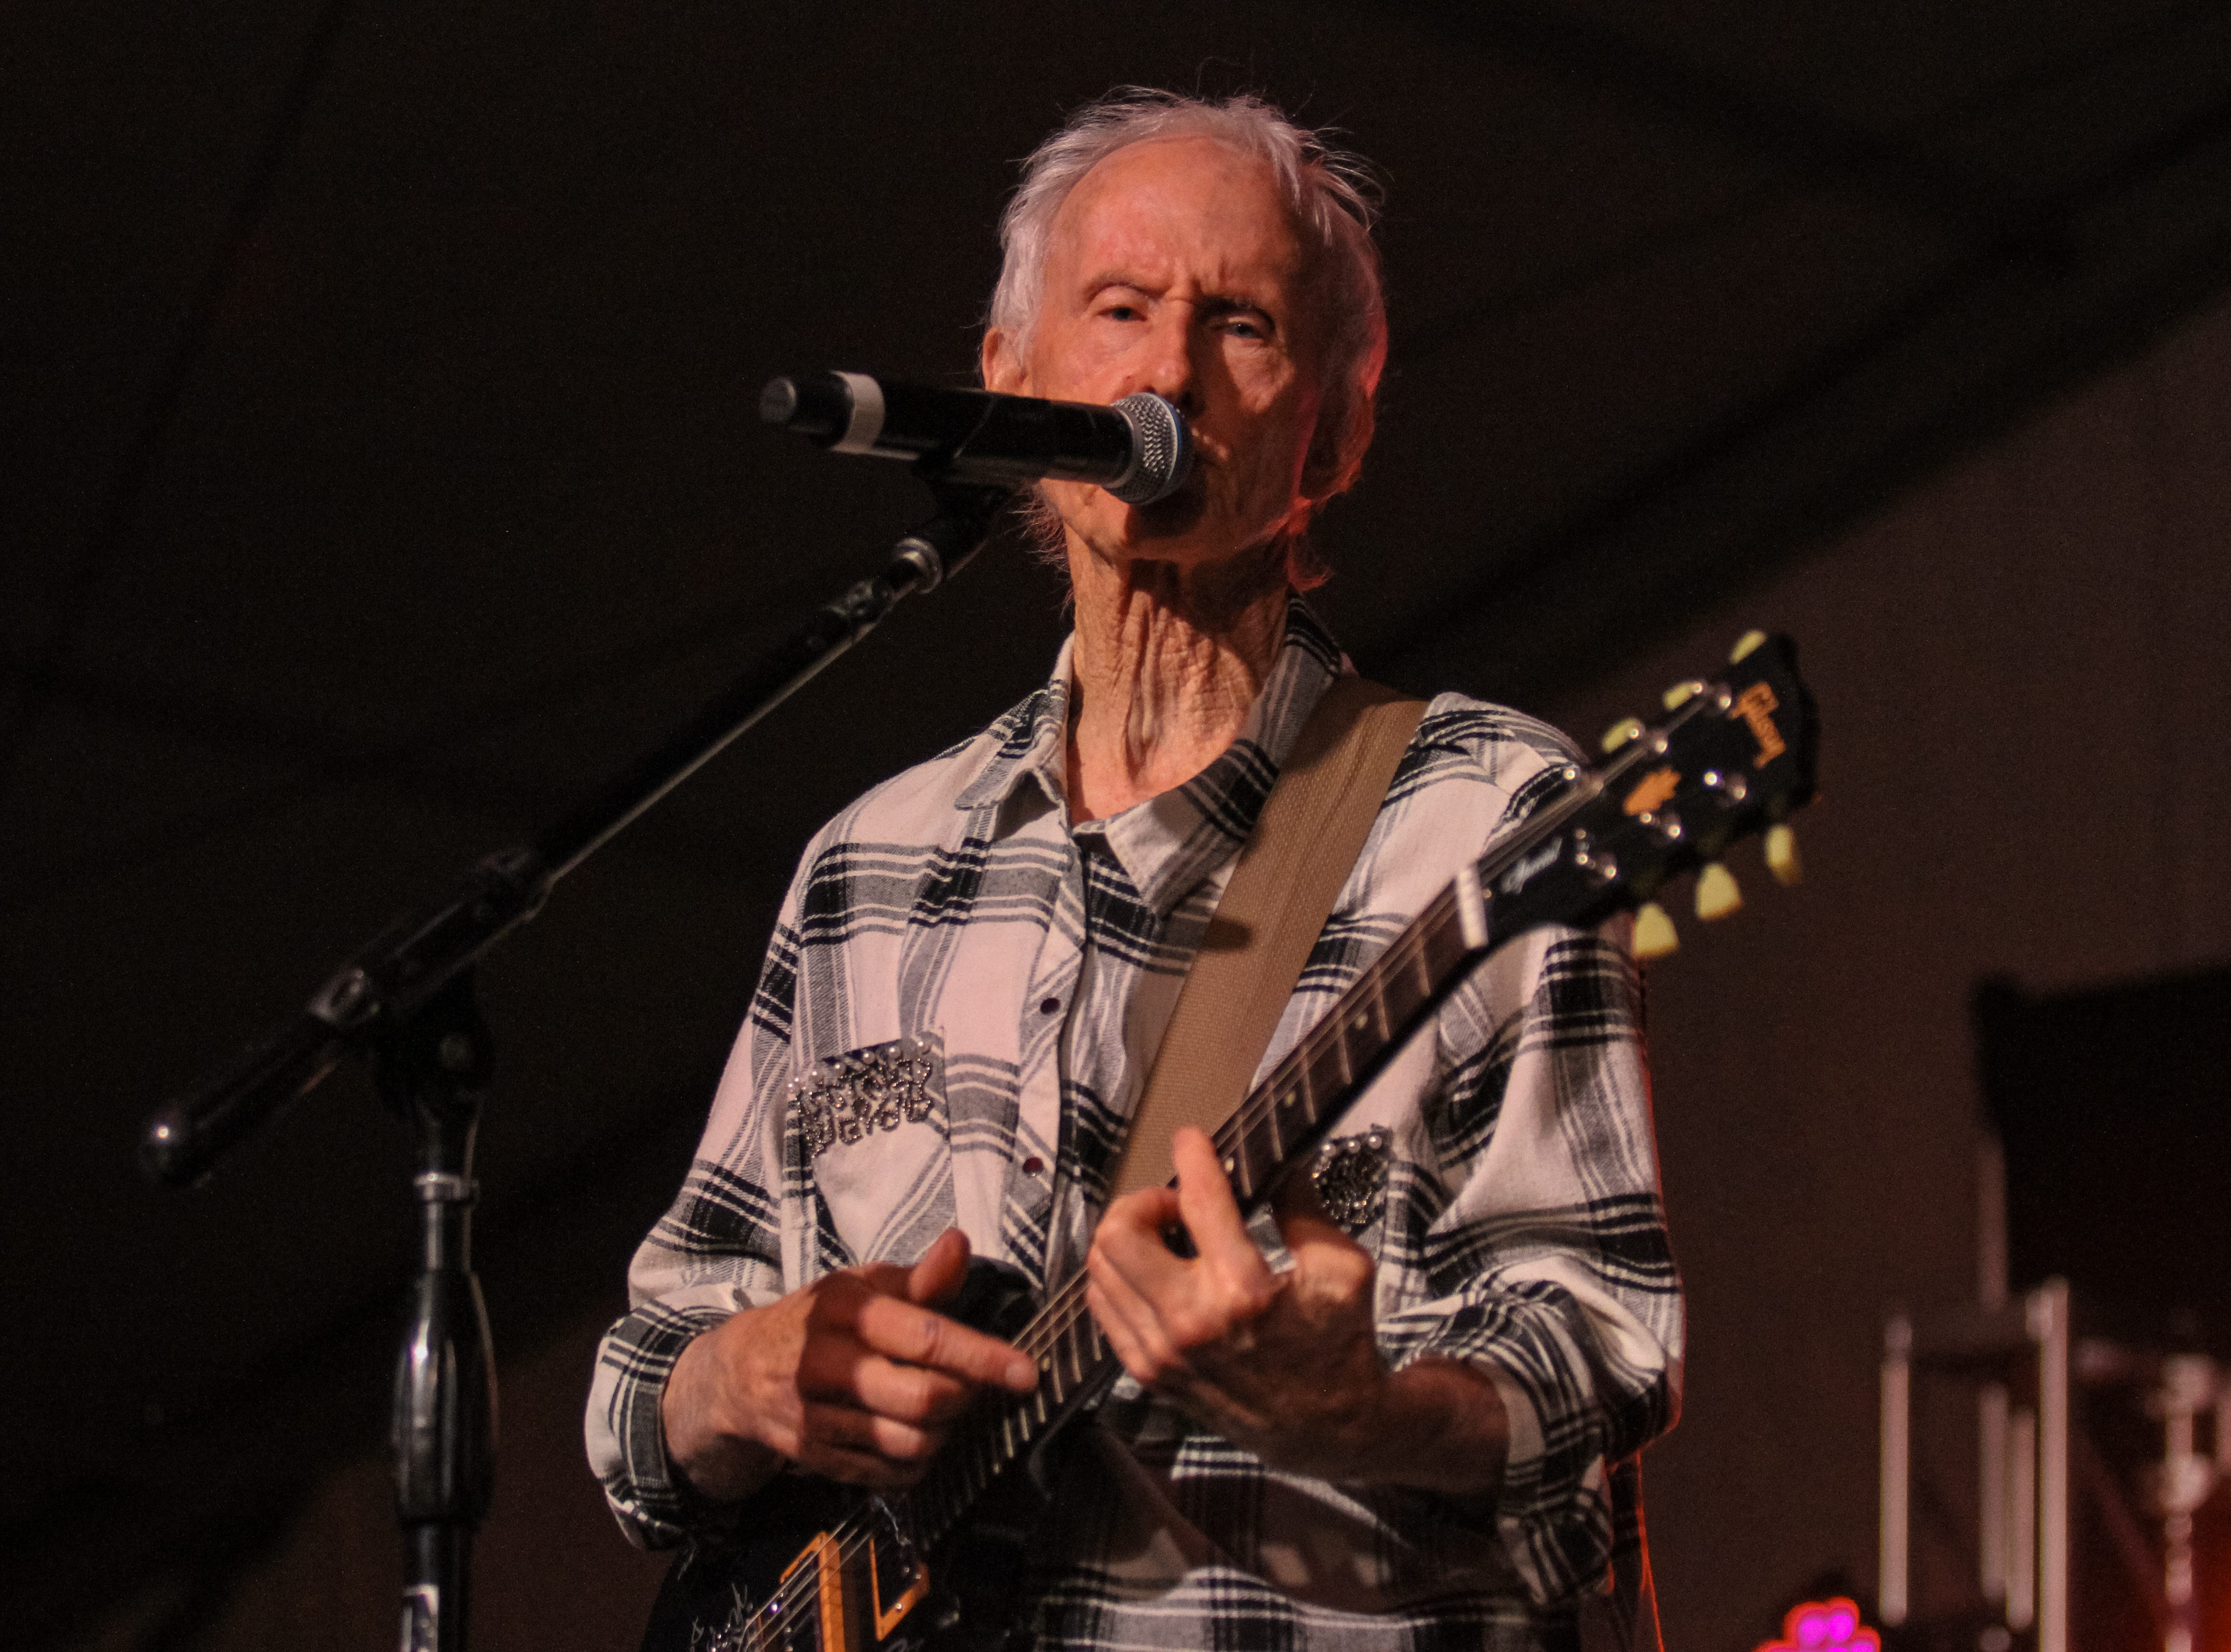 Robby Krieger of The Doors performs at Alice Cooper's Rock & Roll Fundraising Bash at the Las Sendas Golf Club in Mesa on April 27, 2019.